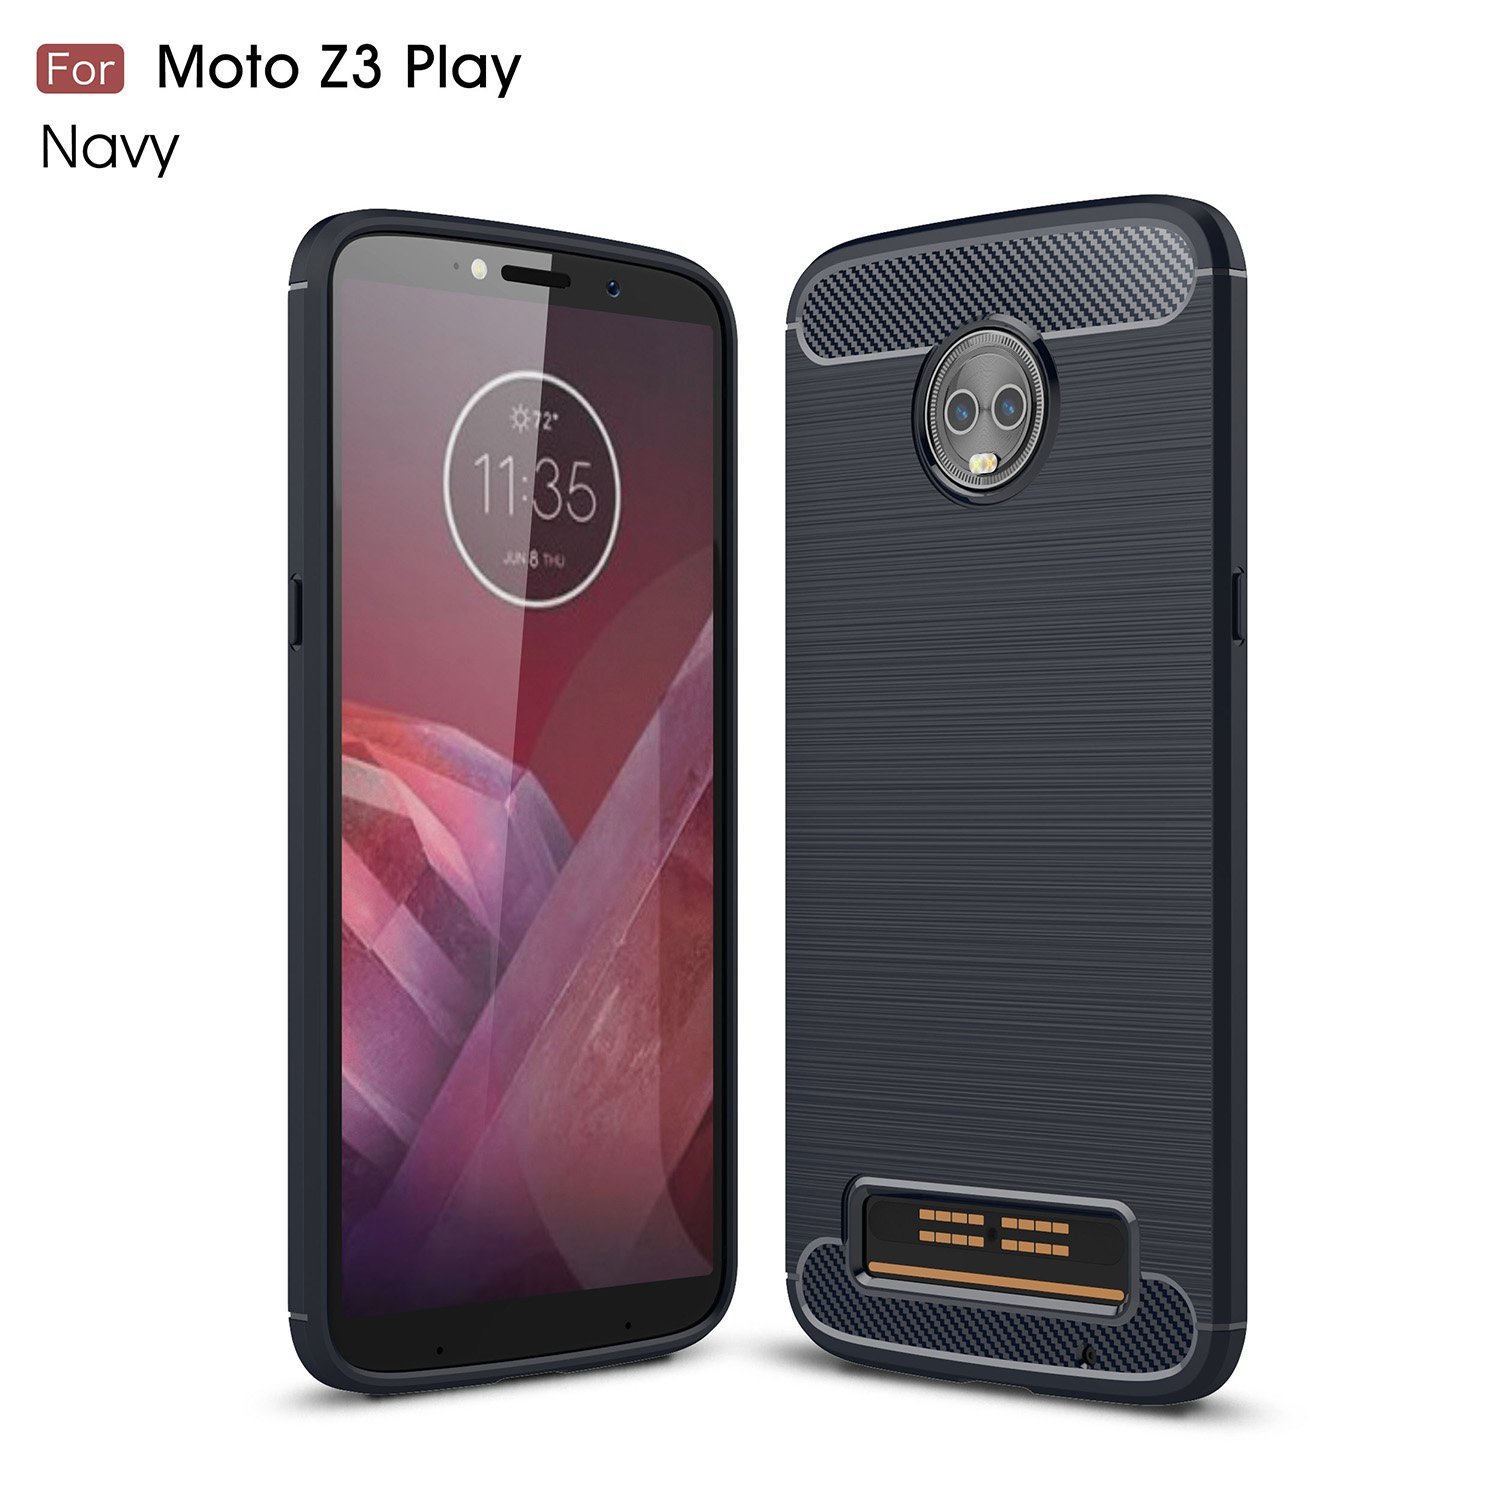 Moto Z3 Case,Moto Z3 Play Ultra Slim Thin Berry Accessory Moto Z3 Play Case Carbon Fiber Non-Slip Cover Scratch Resistant Shock Absorption Soft TPU Protective Case for Moto Z3 Play Black